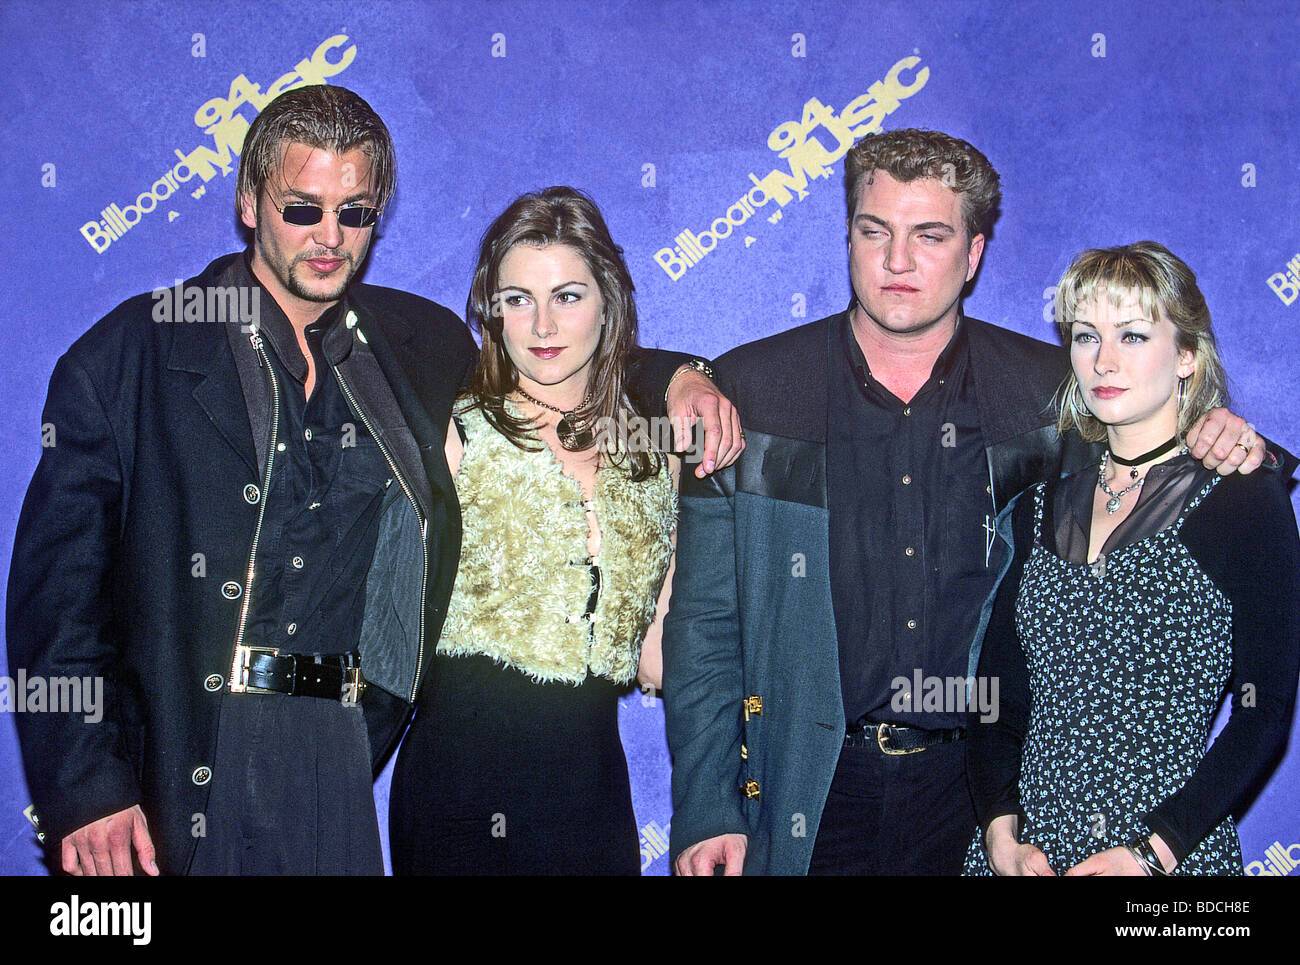 ACE OF BASE  -  Swedish pop-reggae group in 1994 from l: Ulf Ekberg, Jenny Berggren, Jonas Berggren and Linn Berggren - Stock Image